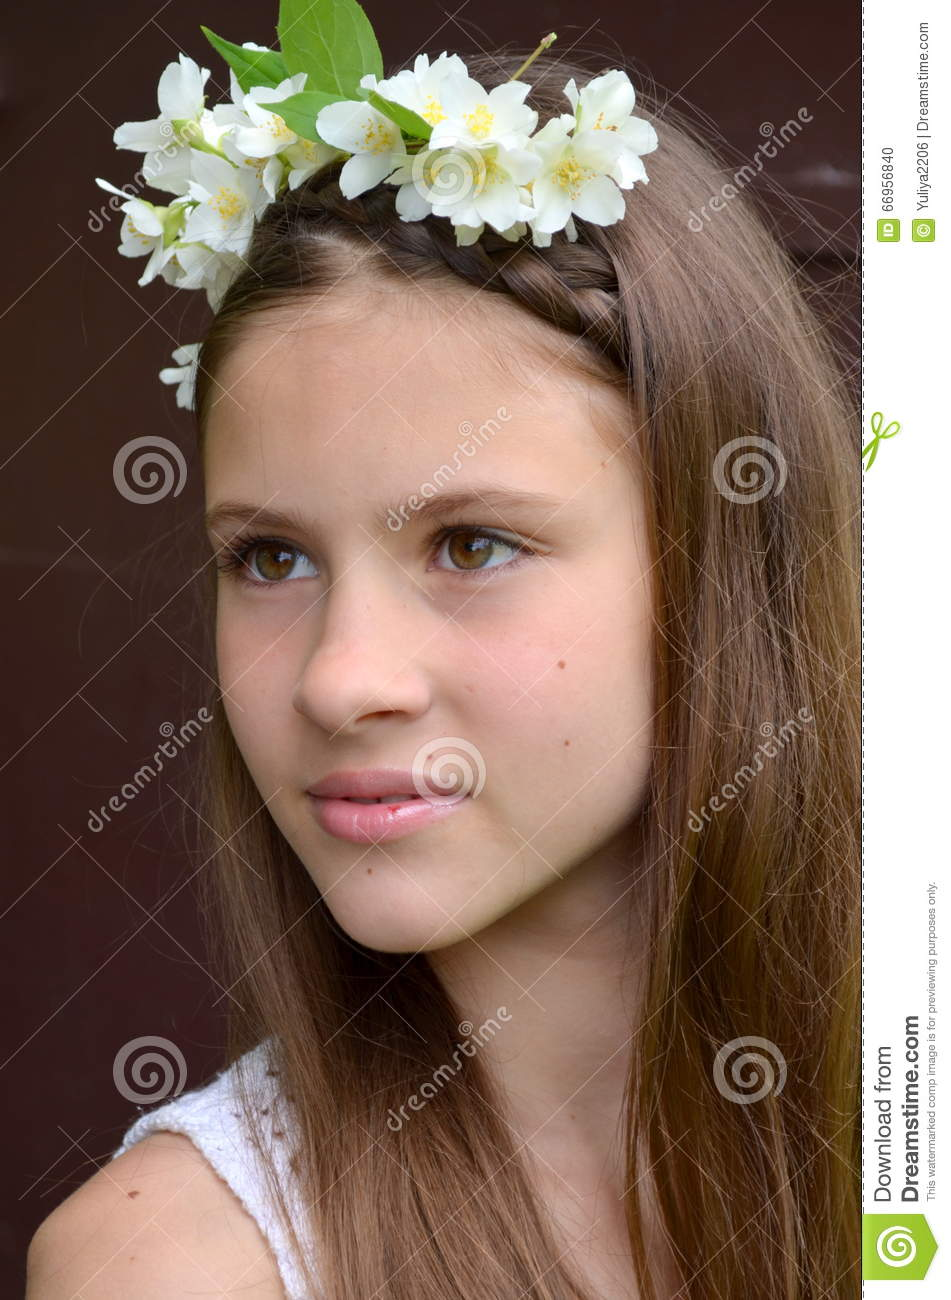 Girl with jasmine flowers stock photo image of caucasian 66956840 girl with a flower wreath on head with live jasmine flowers izmirmasajfo